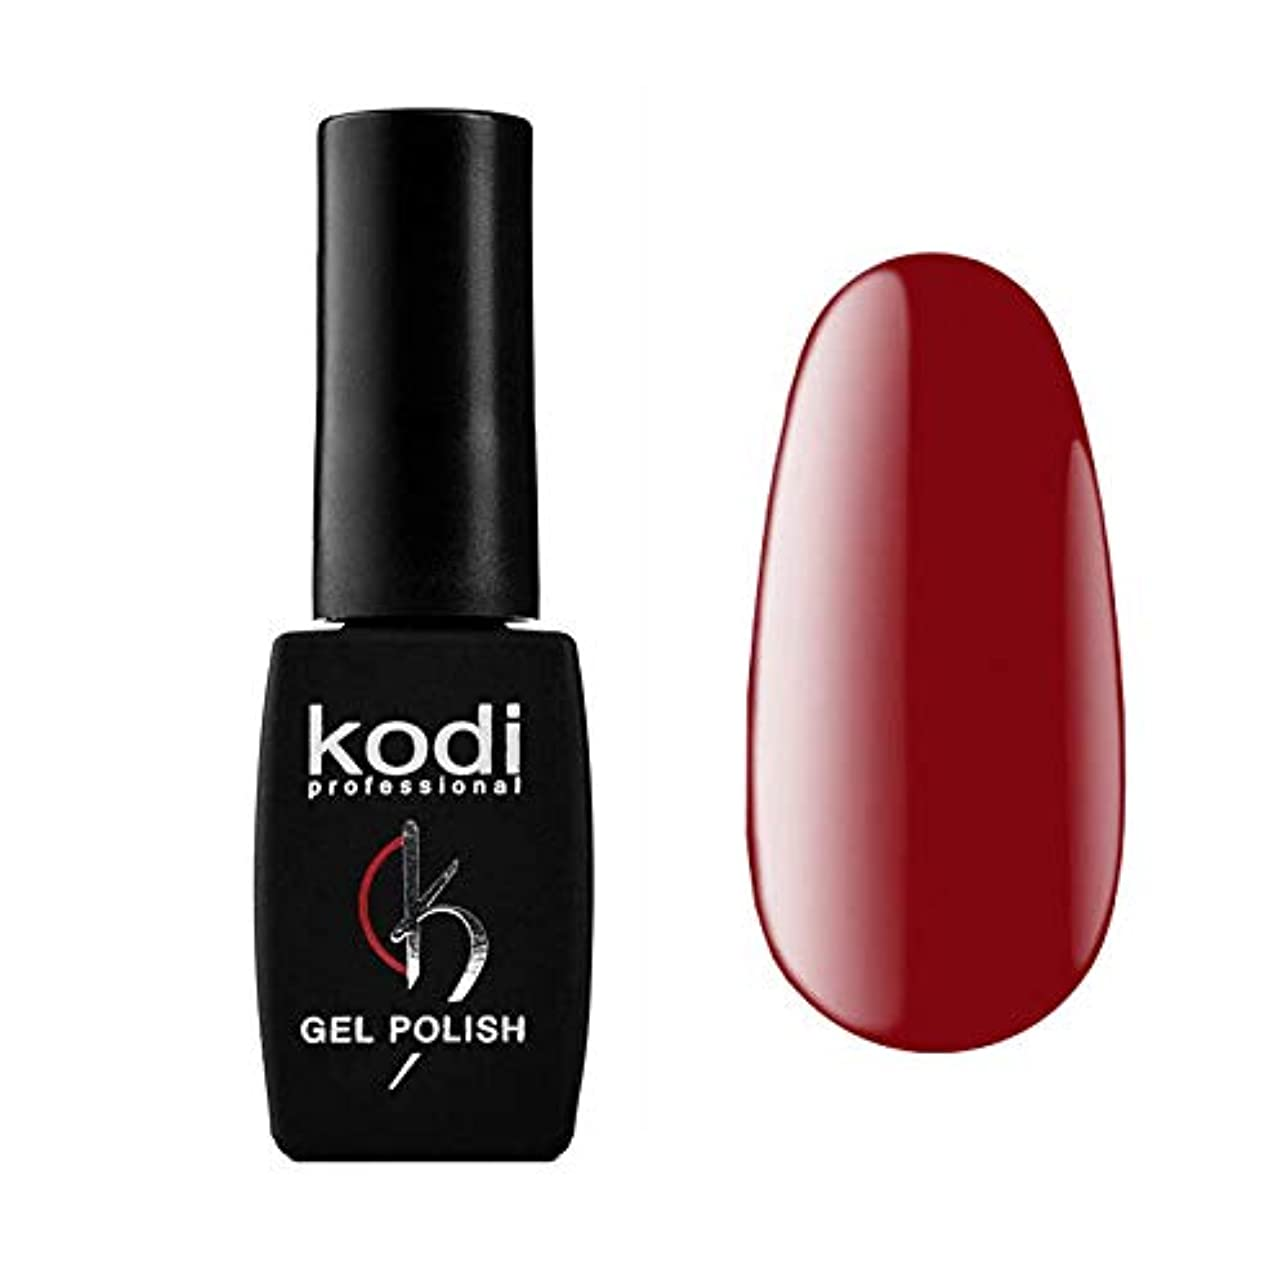 Kodi Professional New Collection R RED #20 Color Gel Nail Polish 12ml 0.42 Fl Oz LED UV Genuine Soak Off